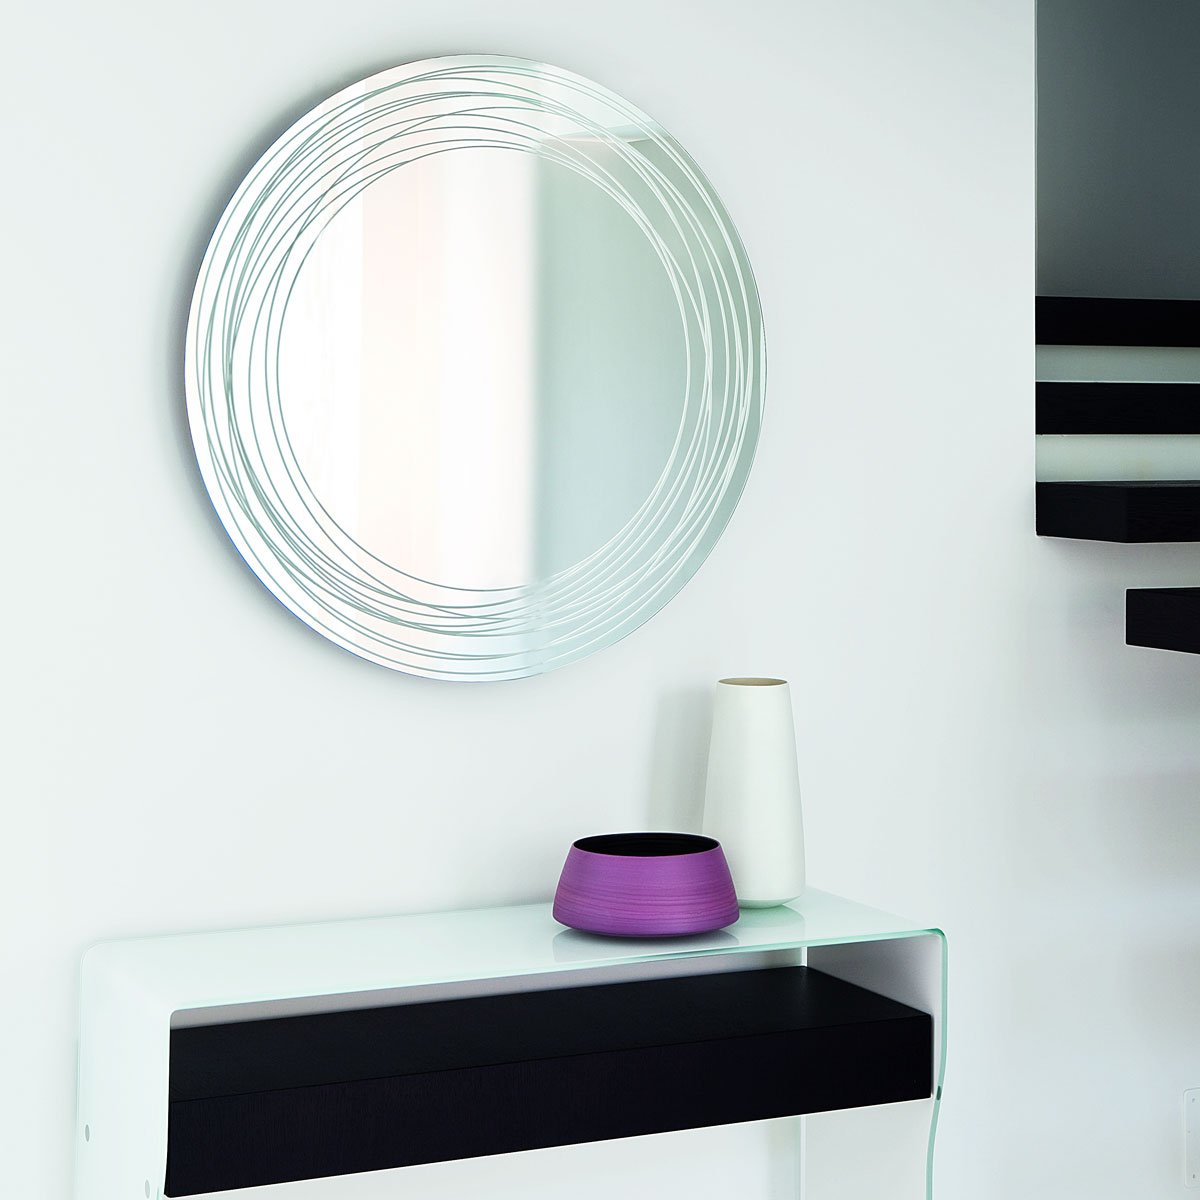 Vertigo mirror klarity glass furniture Mirror glass furniture